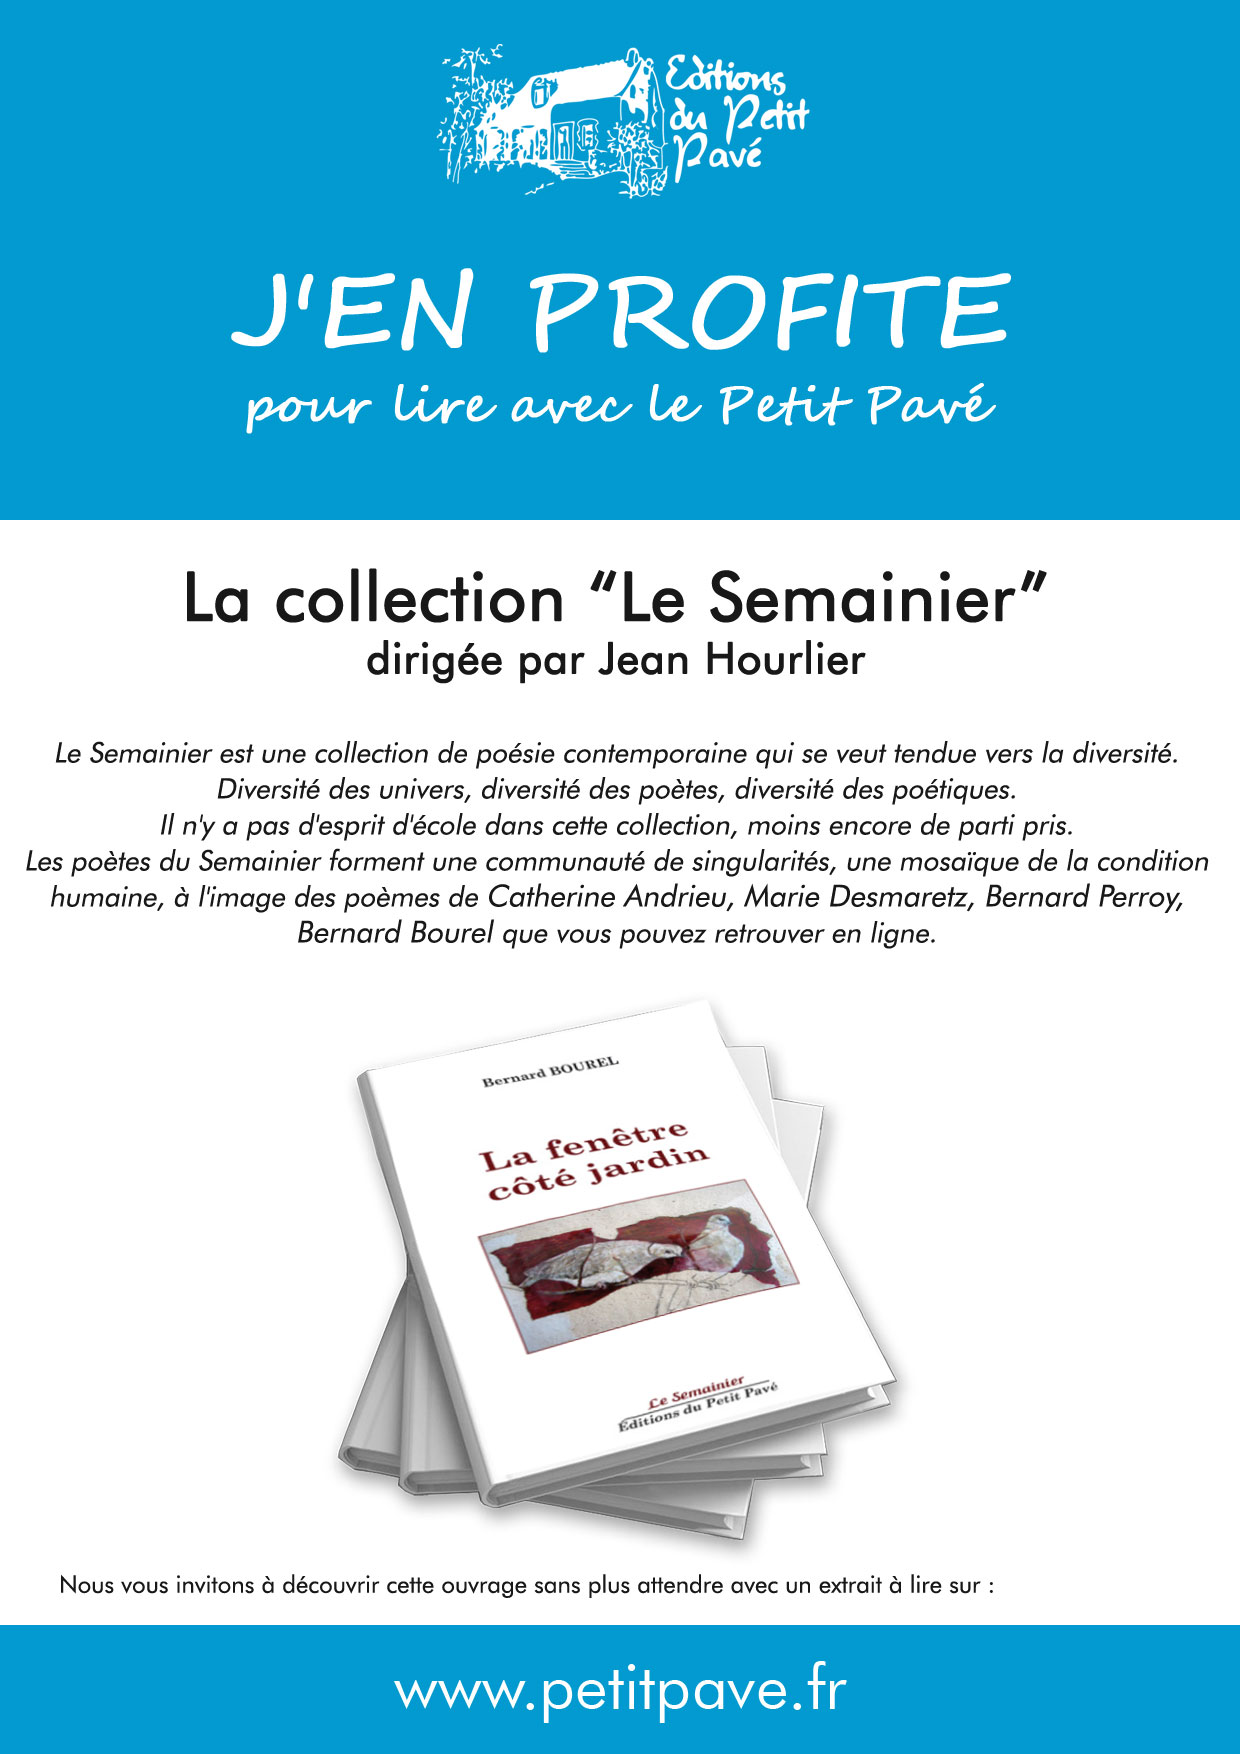 Collection Le Semainier - Photo jenprofite_coll_semainier.jpg